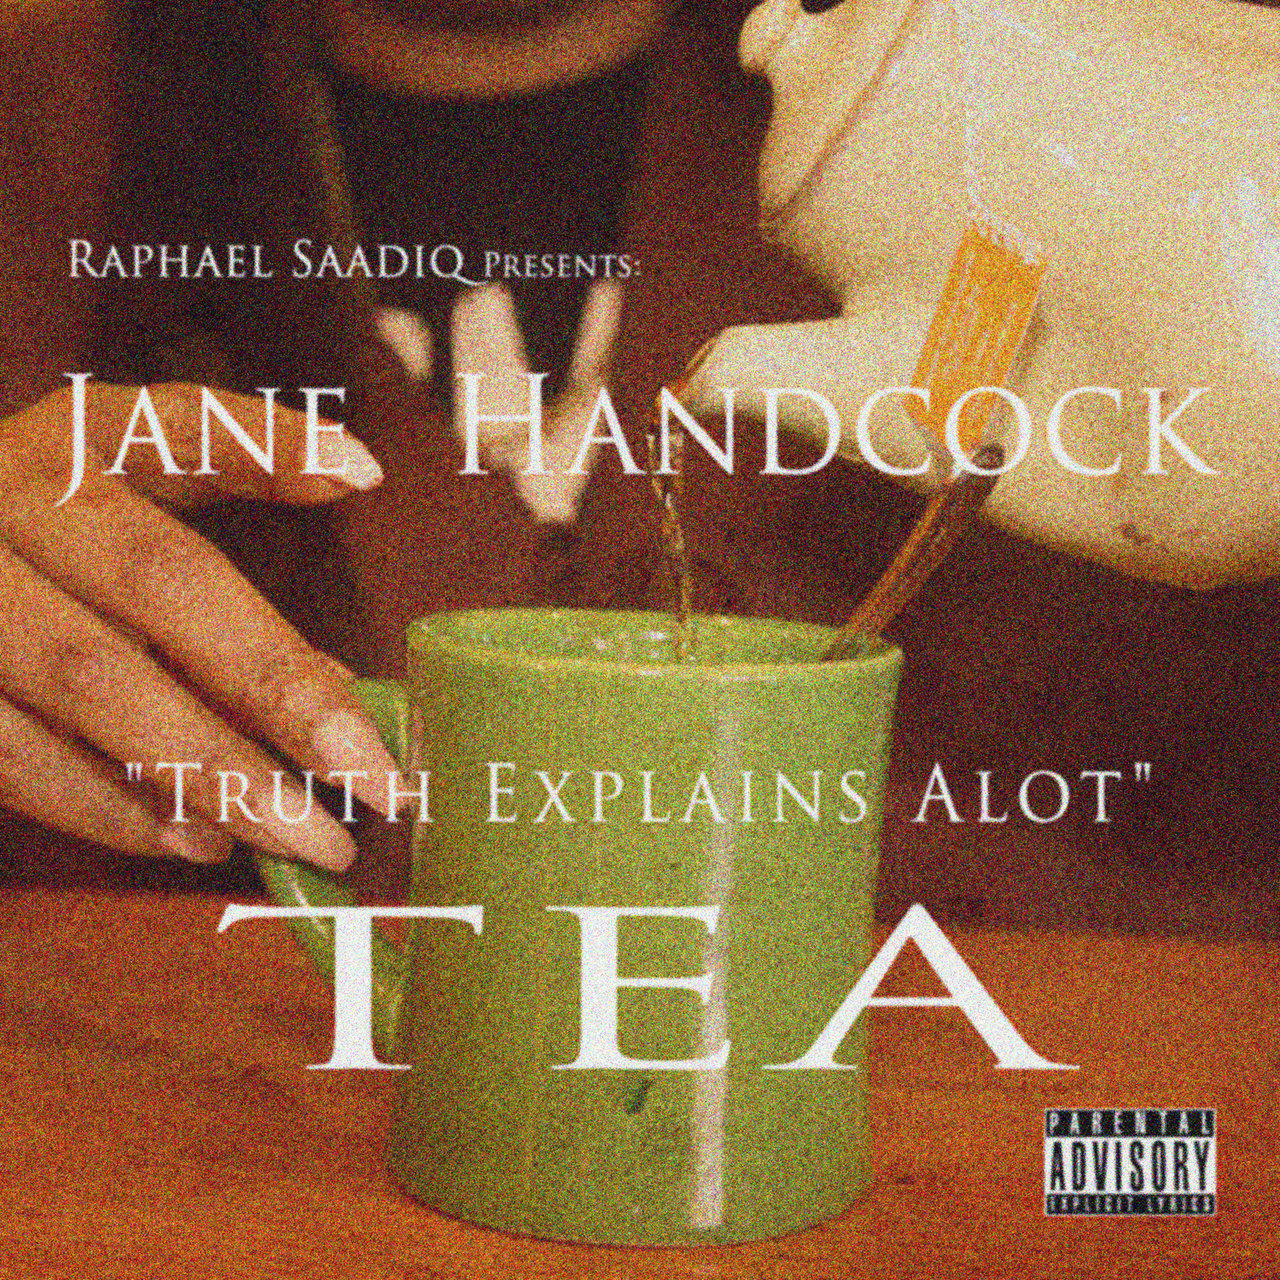 Raphael Saadiq Presents: Jane Handcock